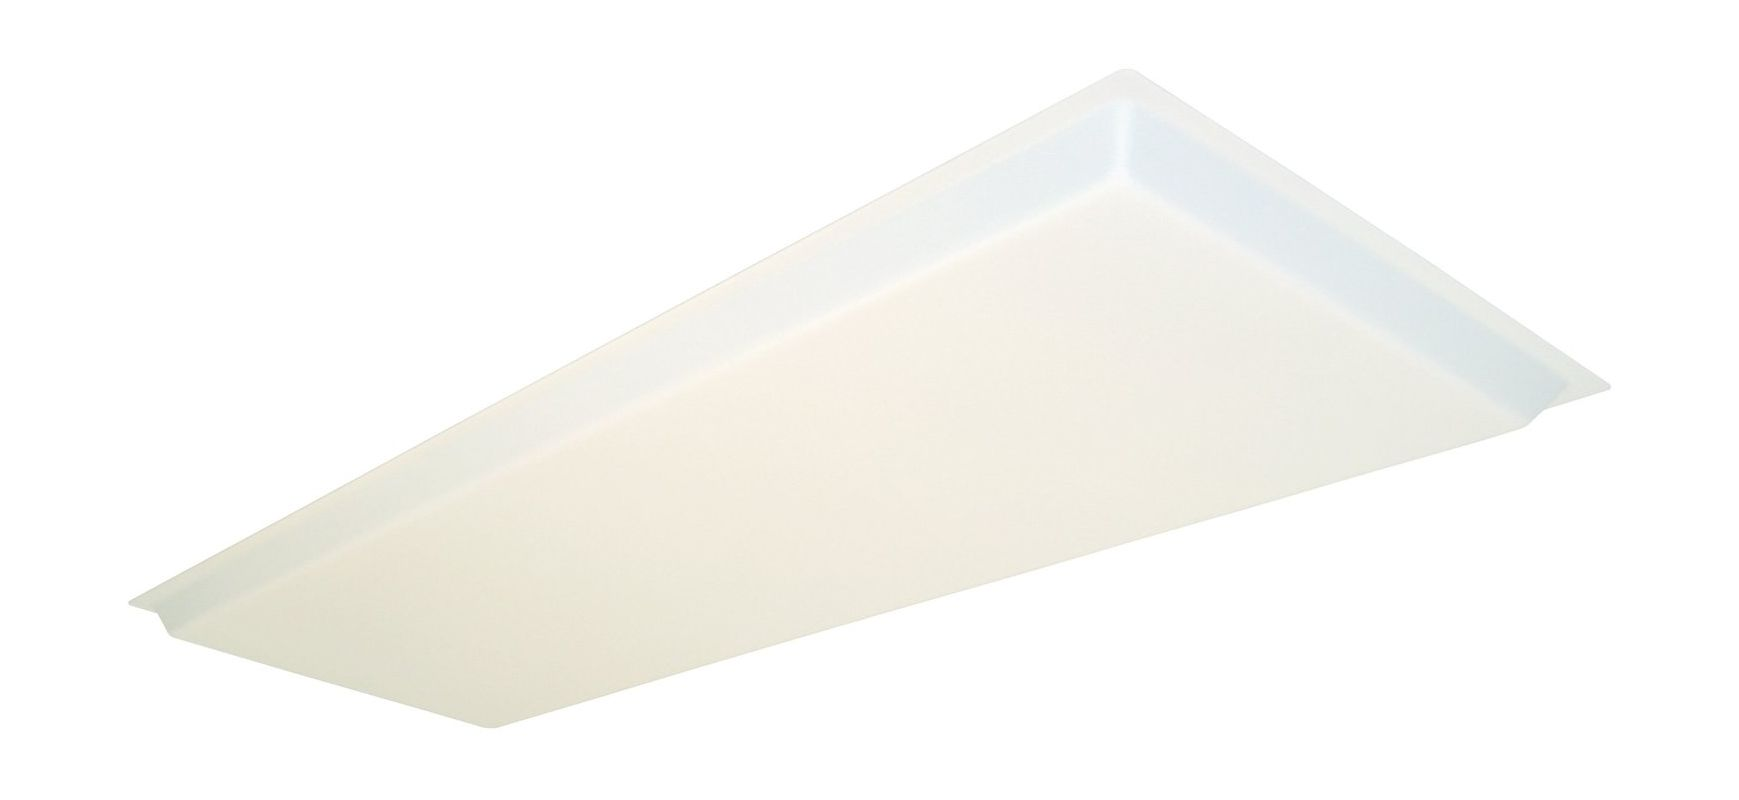 "Lithonia Lighting D15SBDDROP 16"" x 48"" Dropped Diffuser White"